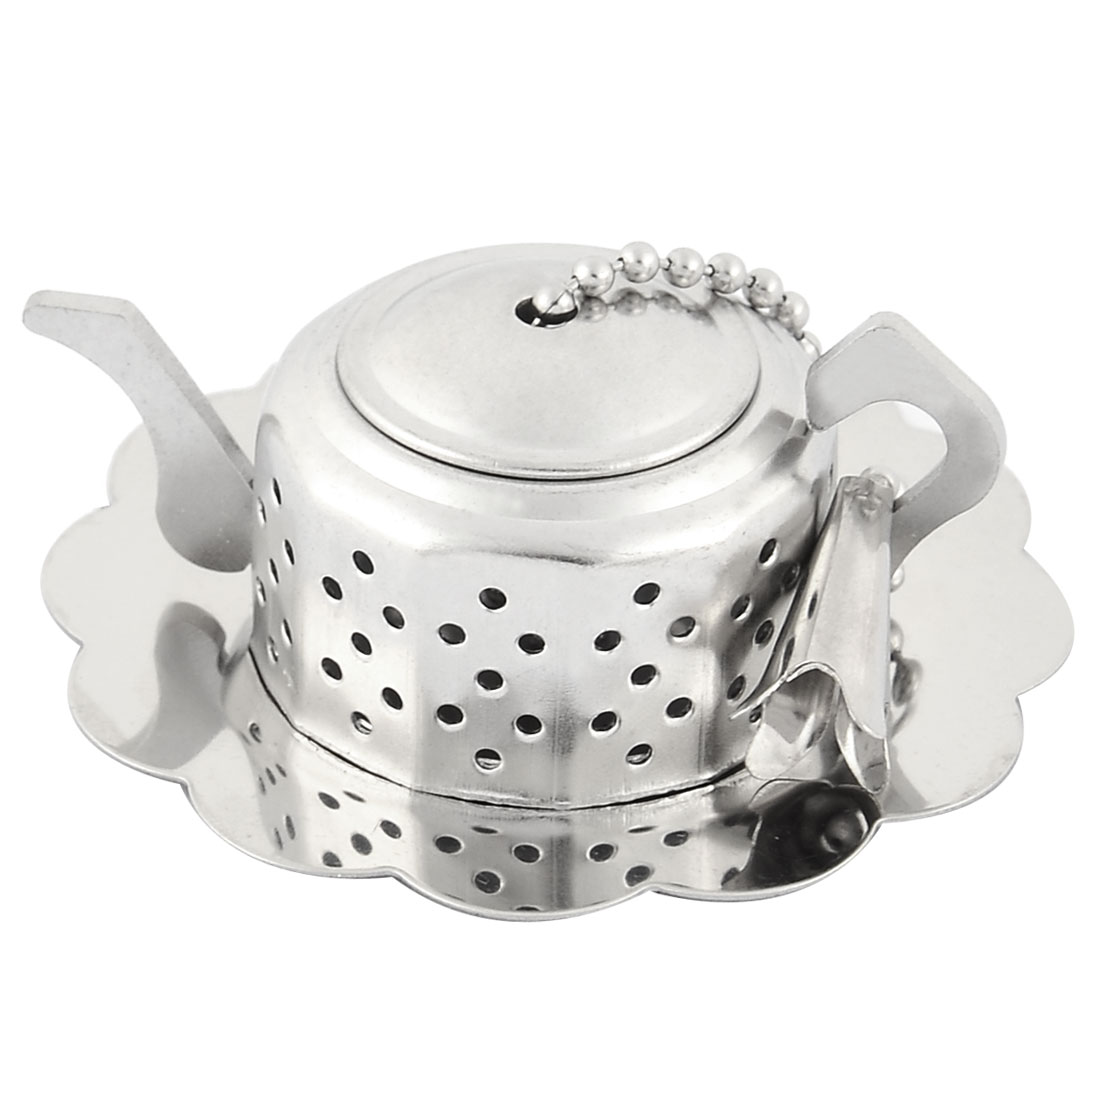 Teapot Shape Herbal Spice Coffee Bean Leaf Filter Tea Strainer Set Silver Tone